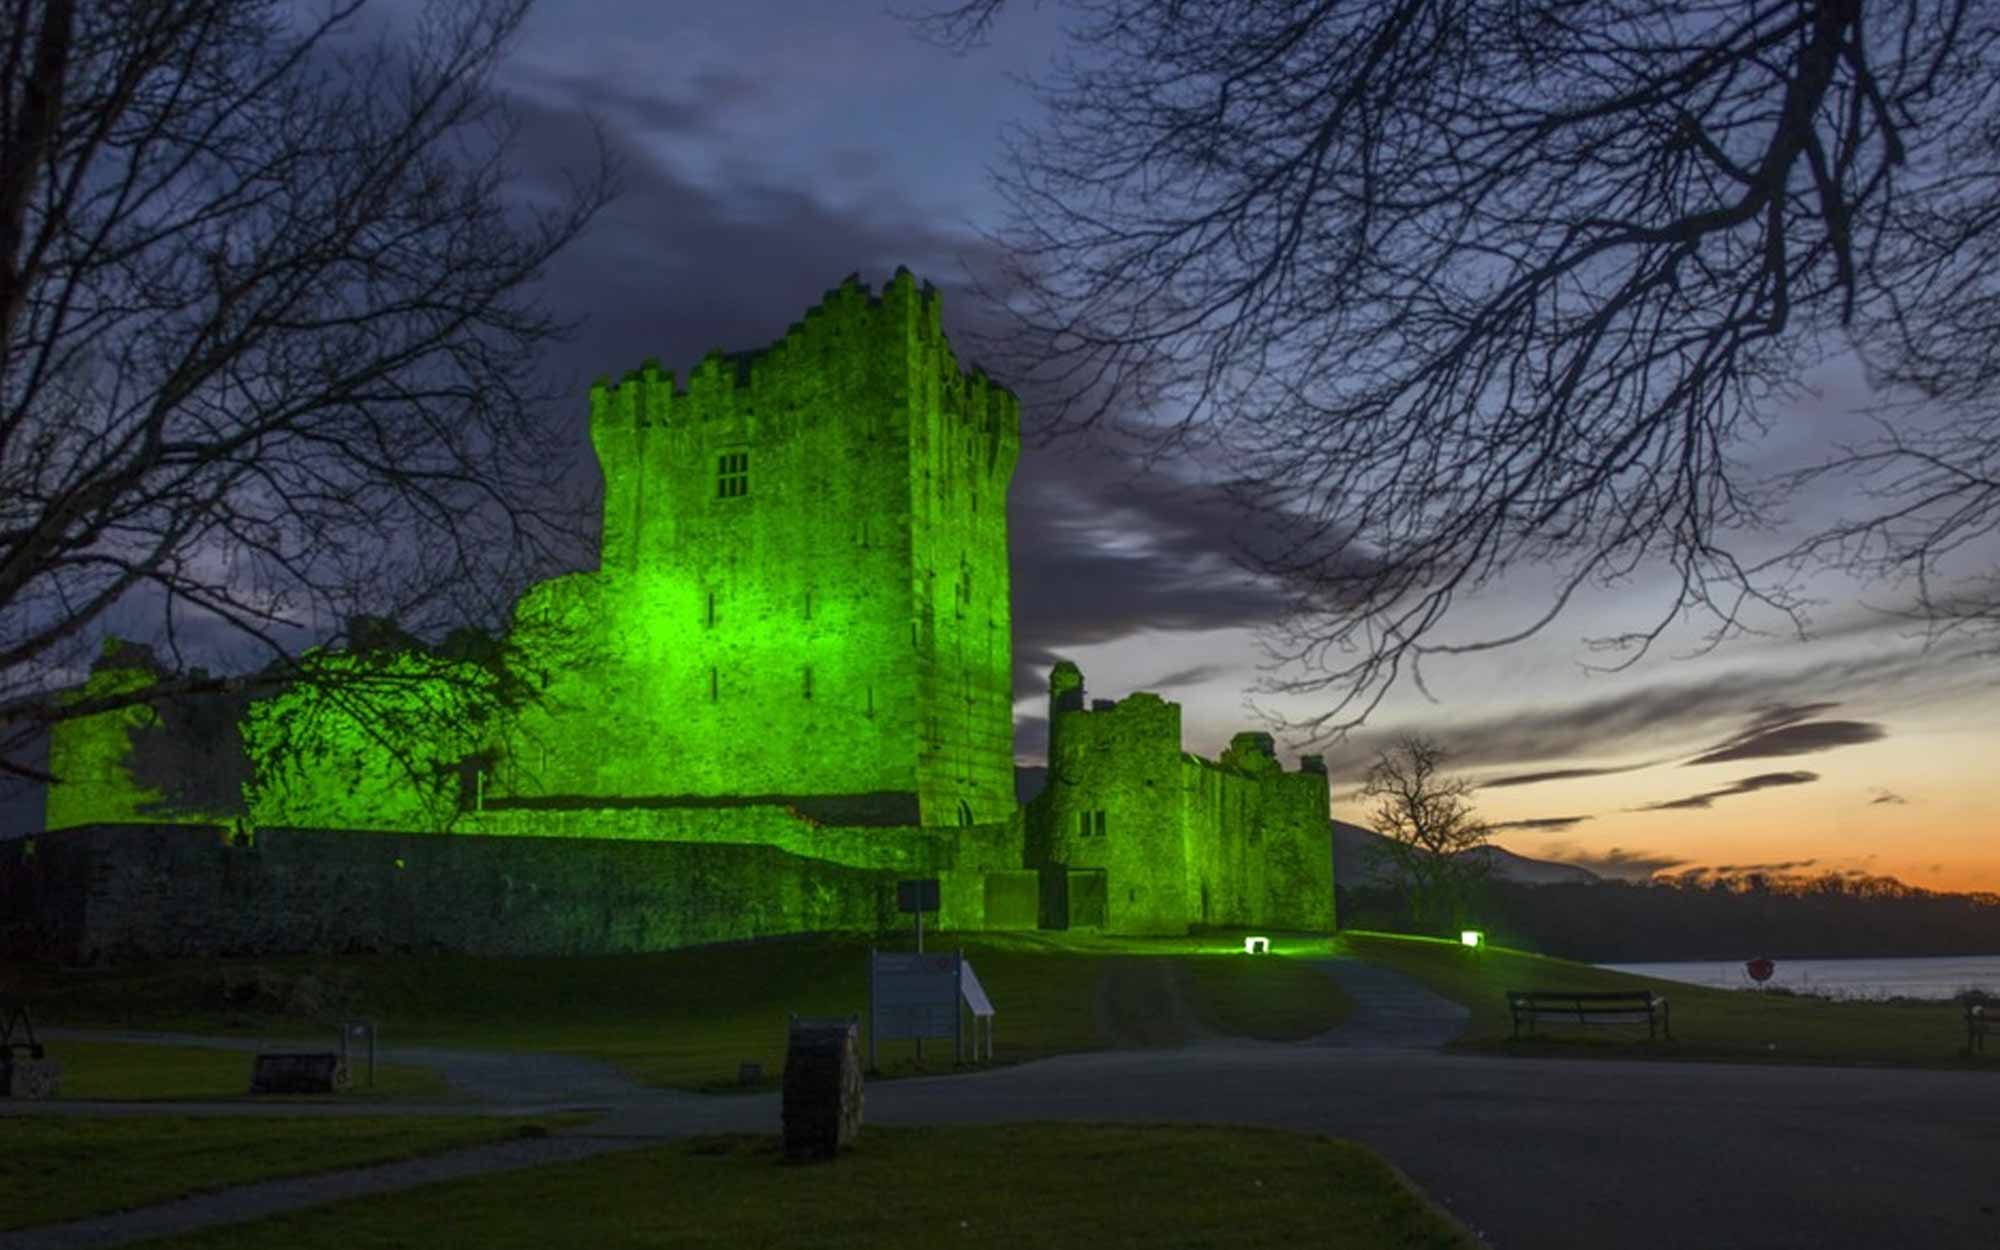 Ross Castle lit up green